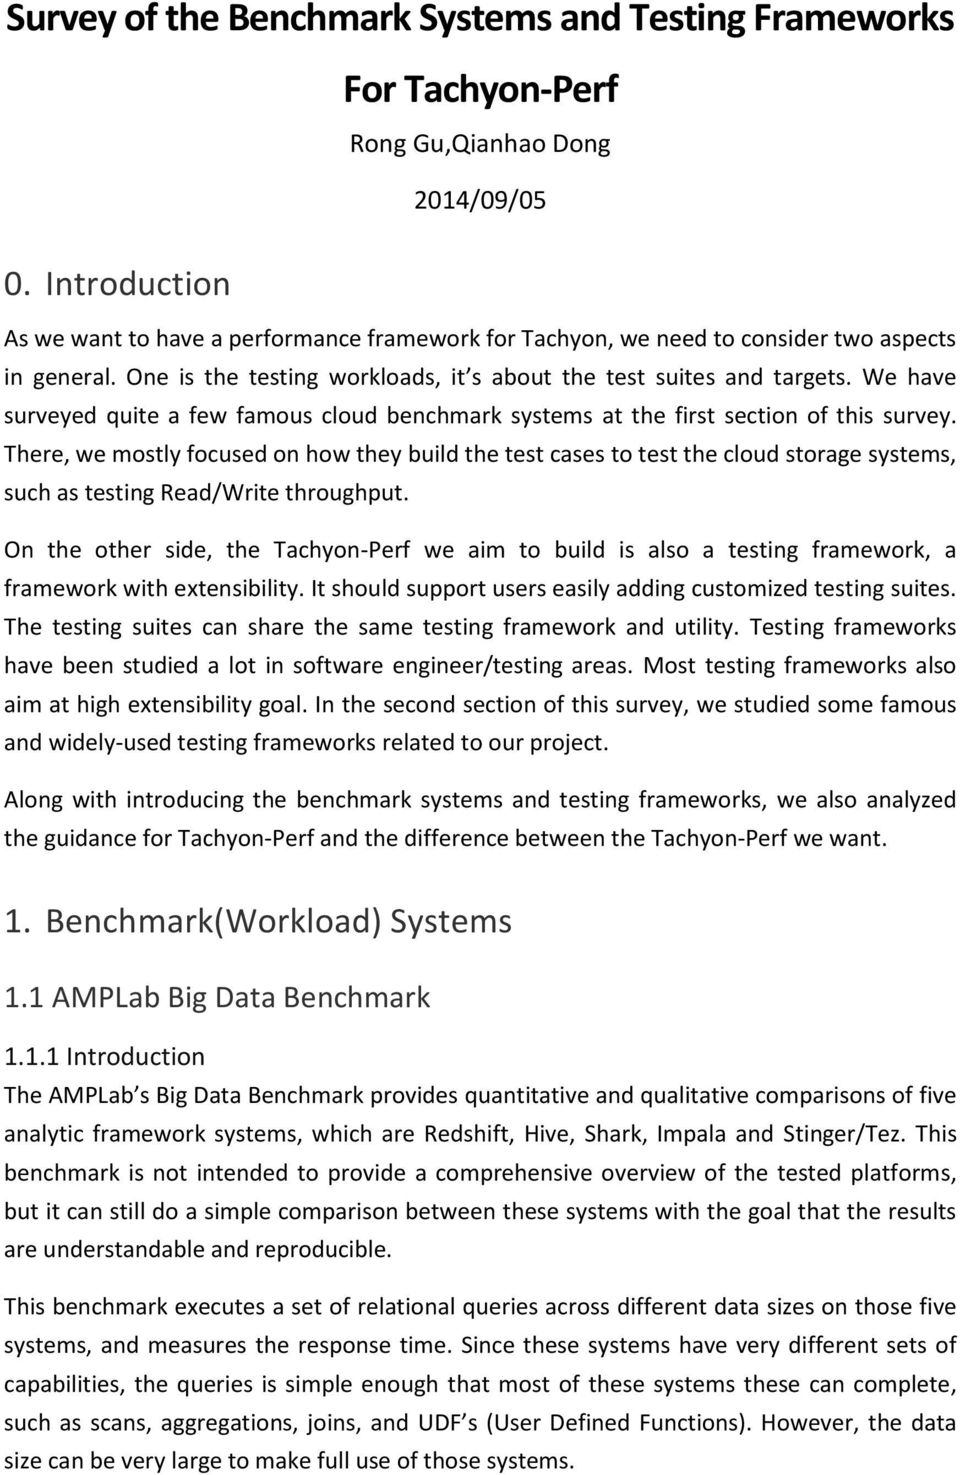 Survey of the Benchmark Systems and Testing Frameworks For Tachyon